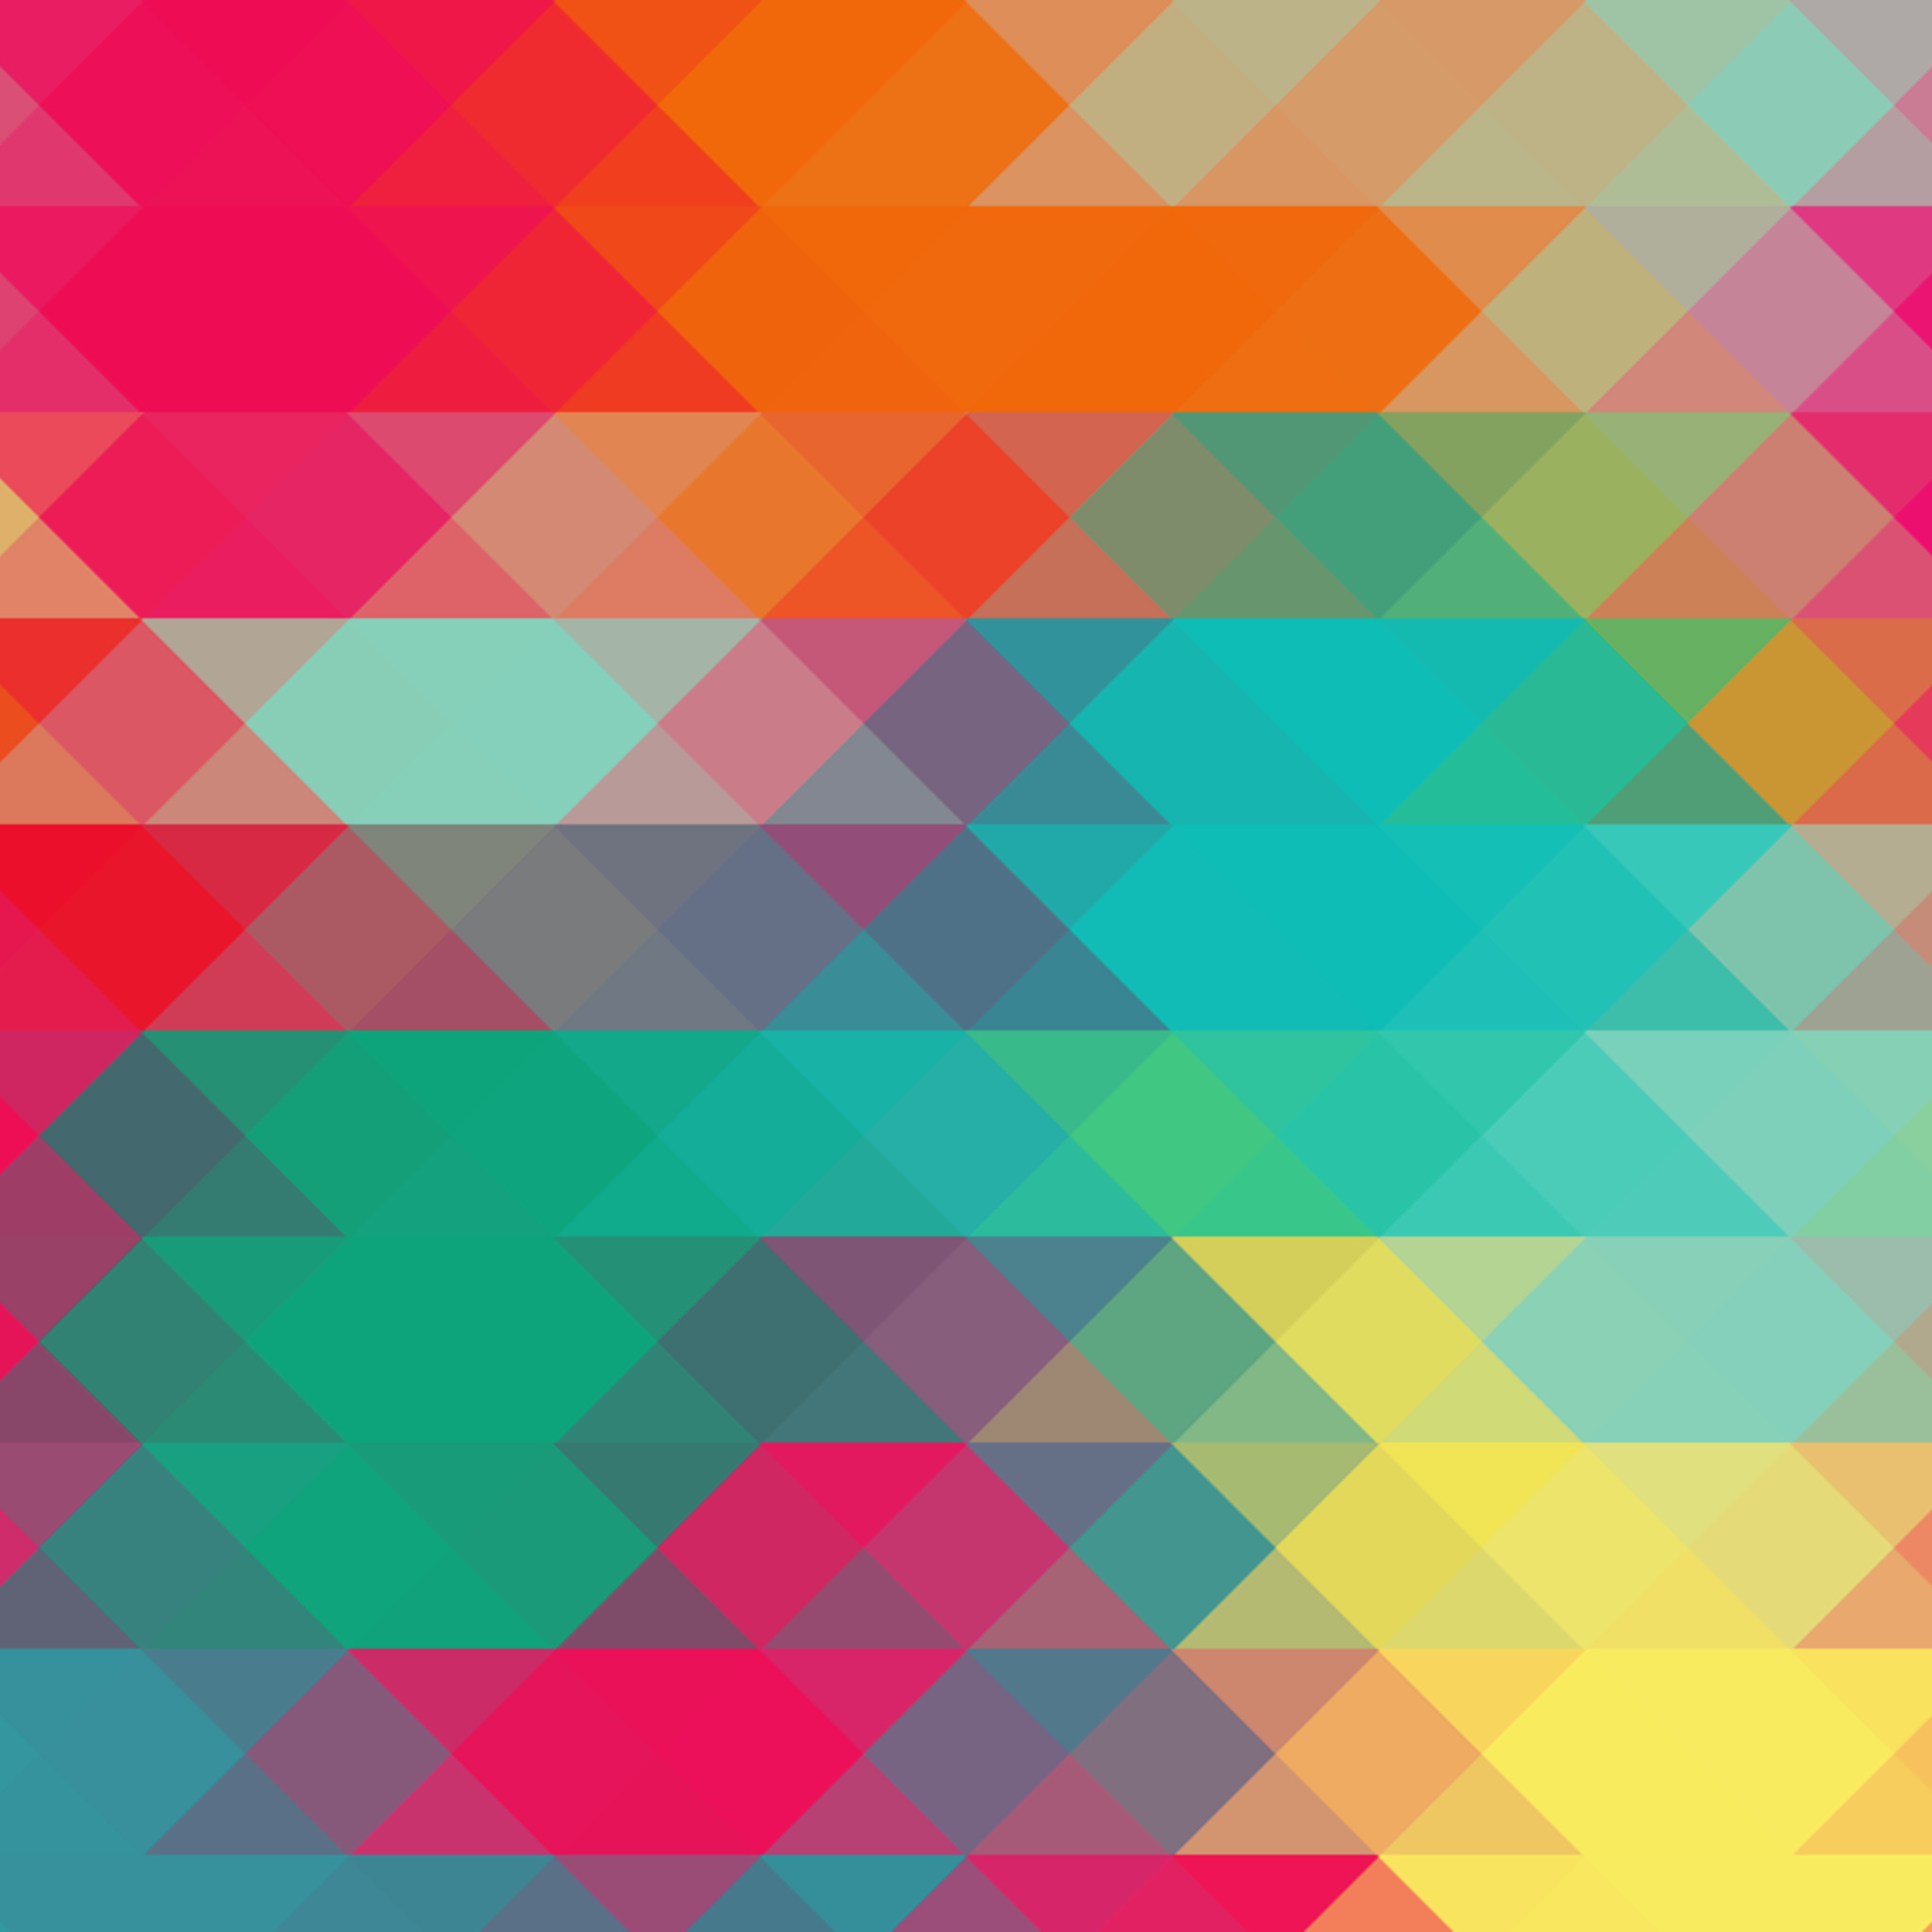 2048x2048 colors abstract ipad air hd 4k wallpapers, images